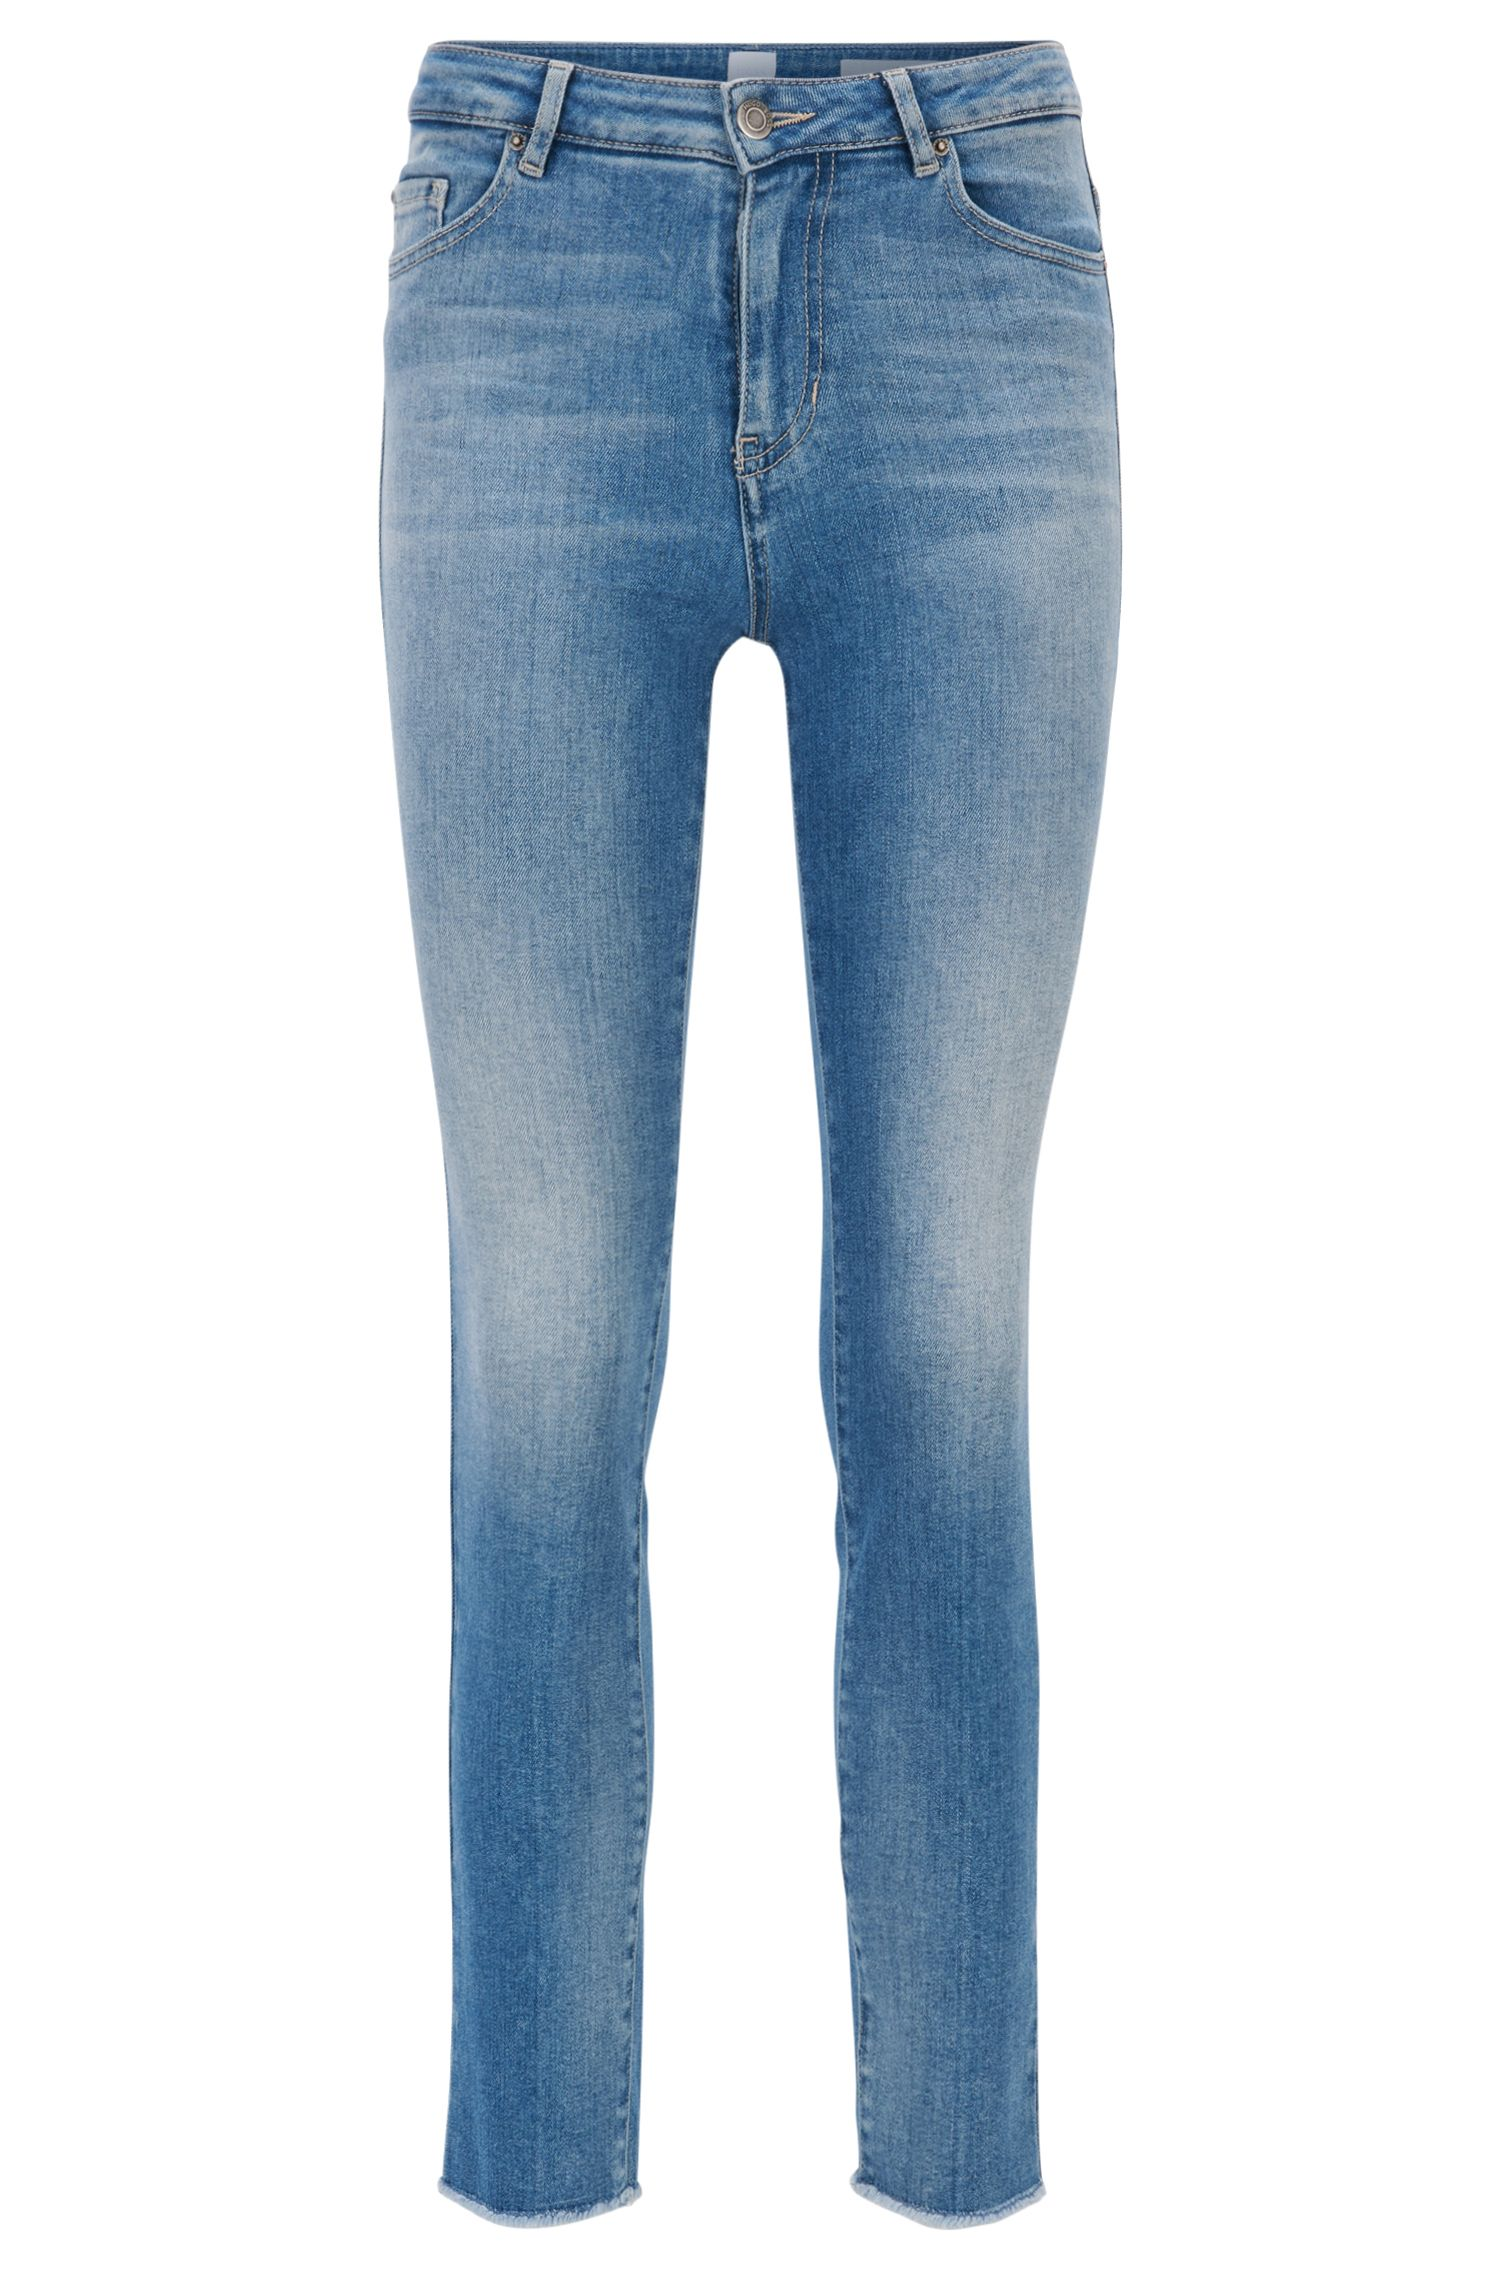 Skinny-Fit Jeans aus italienischem Stretch-Denim in Cropped-Länge